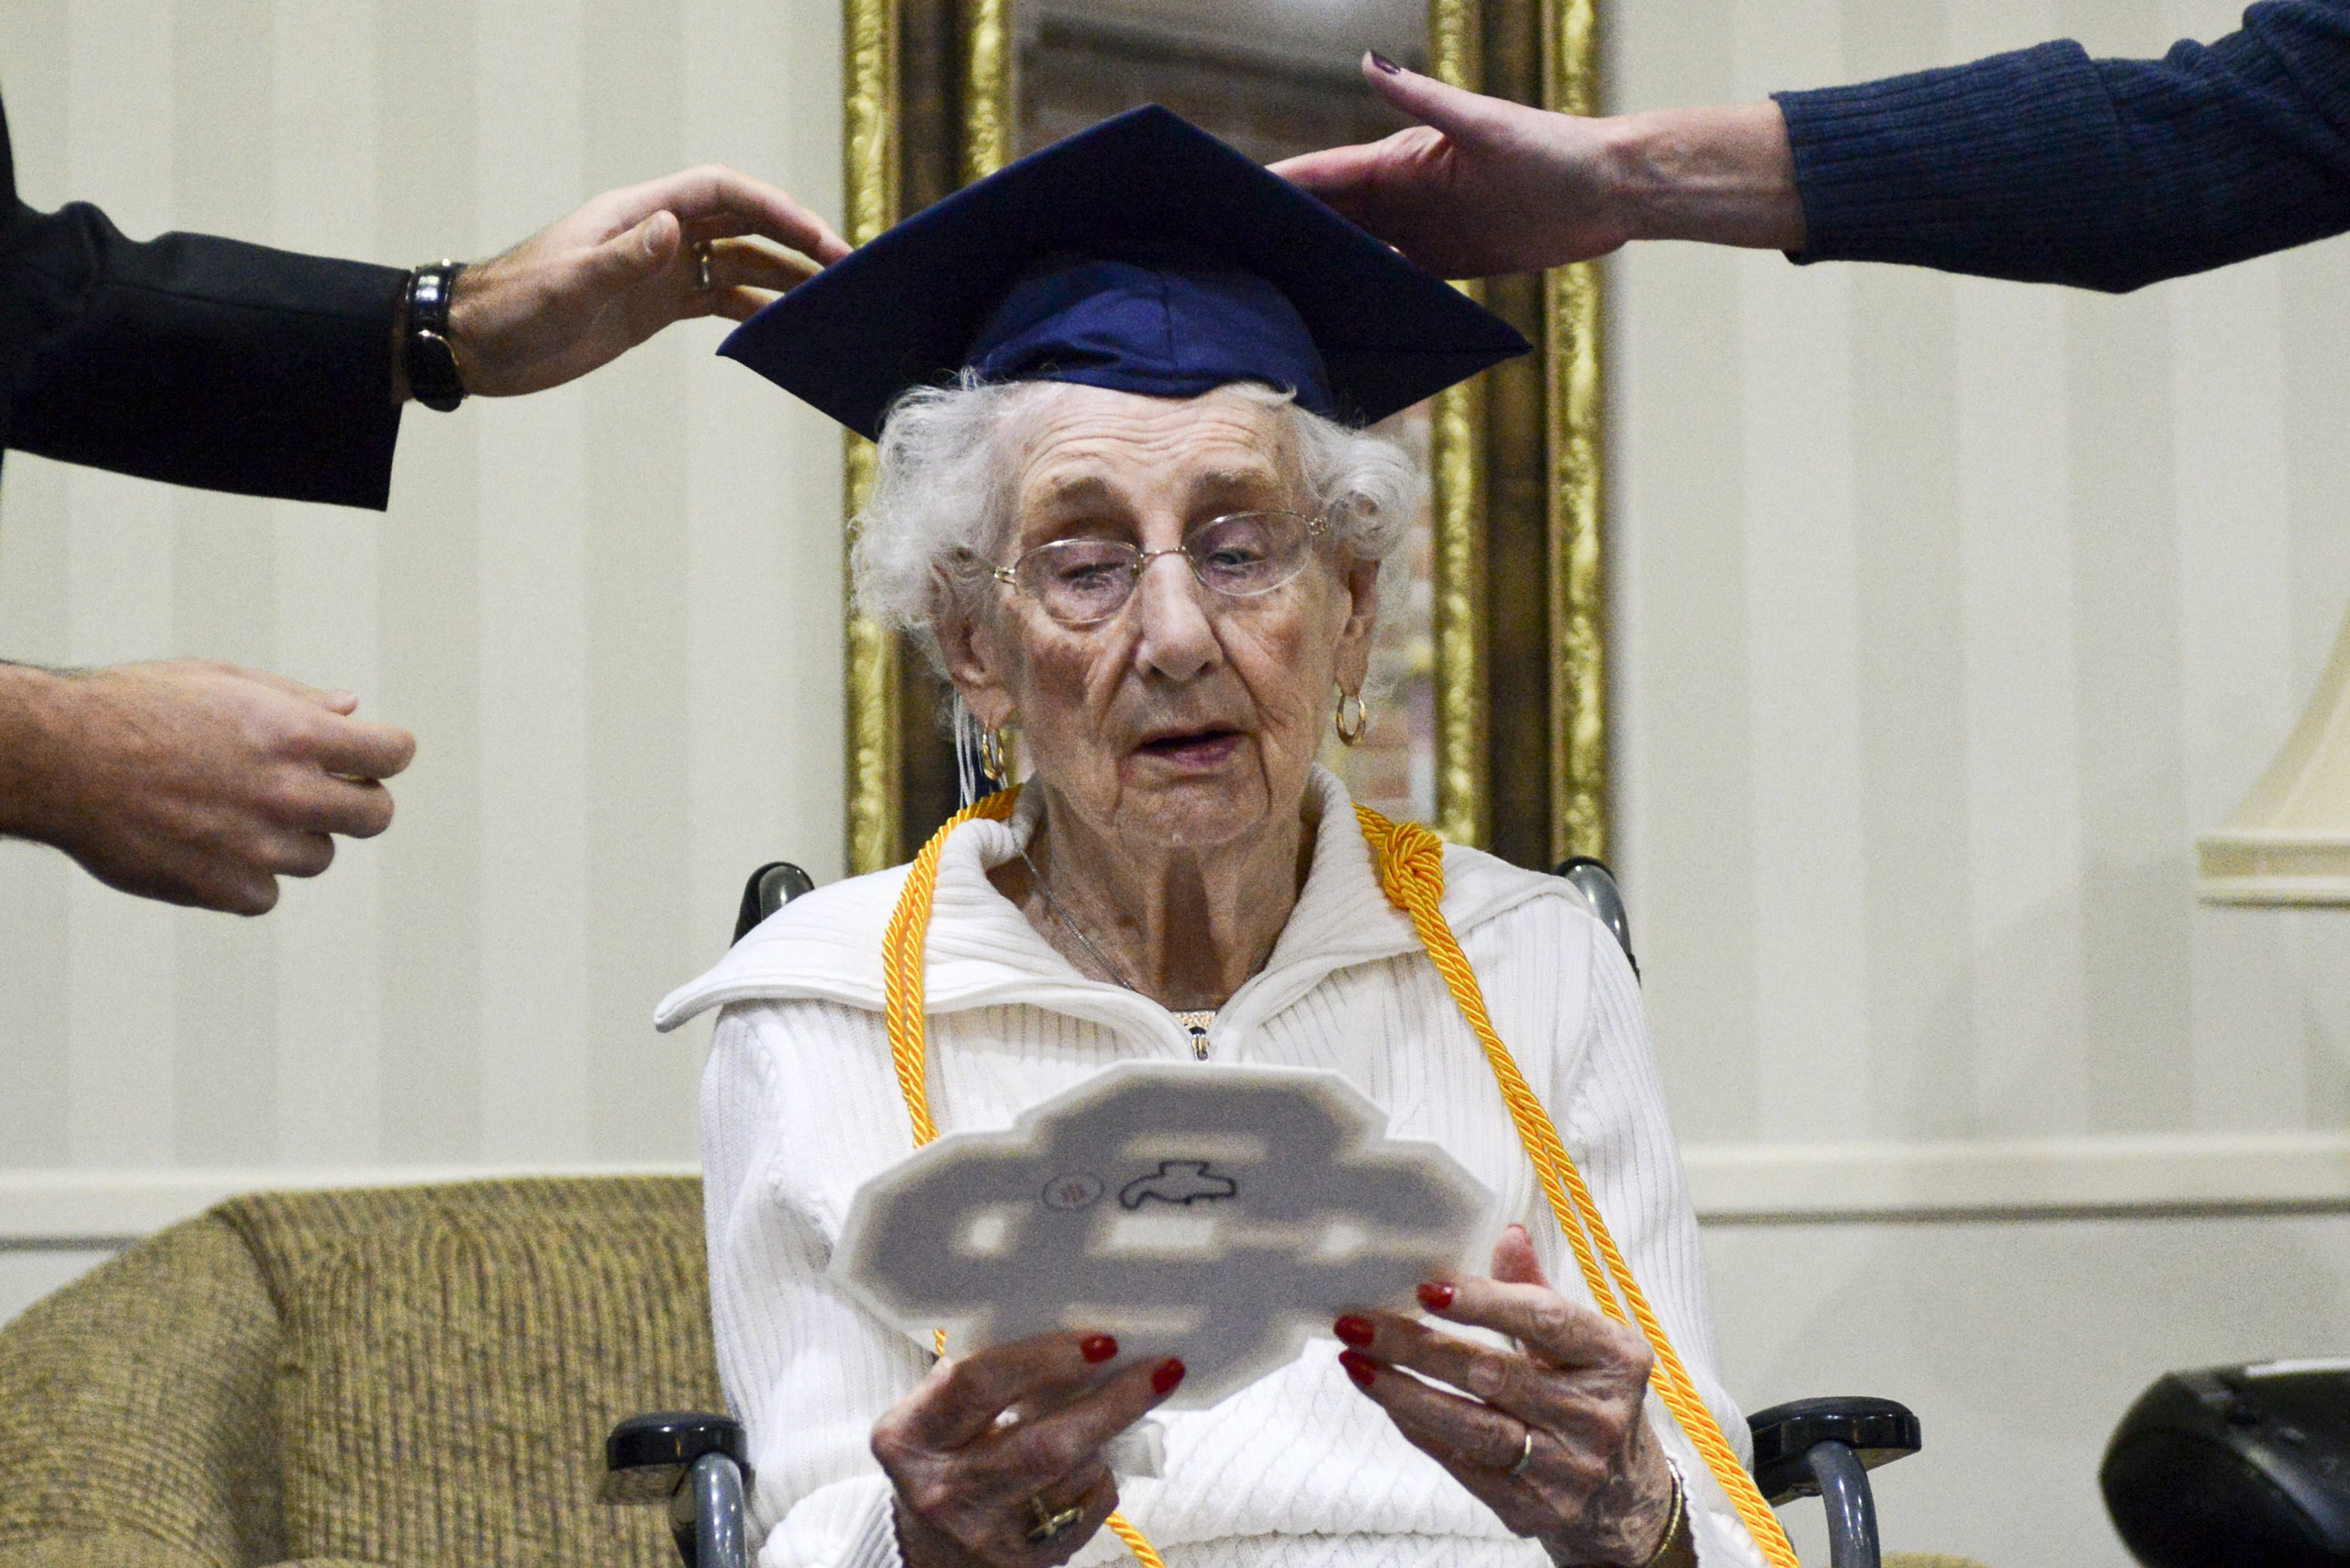 97-year-old Margaret Thome Bekema looks at her high school letter as Catholic Central High School principal Greg Deja, left, and Director of Advancement Beth Banta fix her cap after her honorary graduation at Stonebridge Manor in Grand Rapids, Mich., on Oct. 29, 2015.